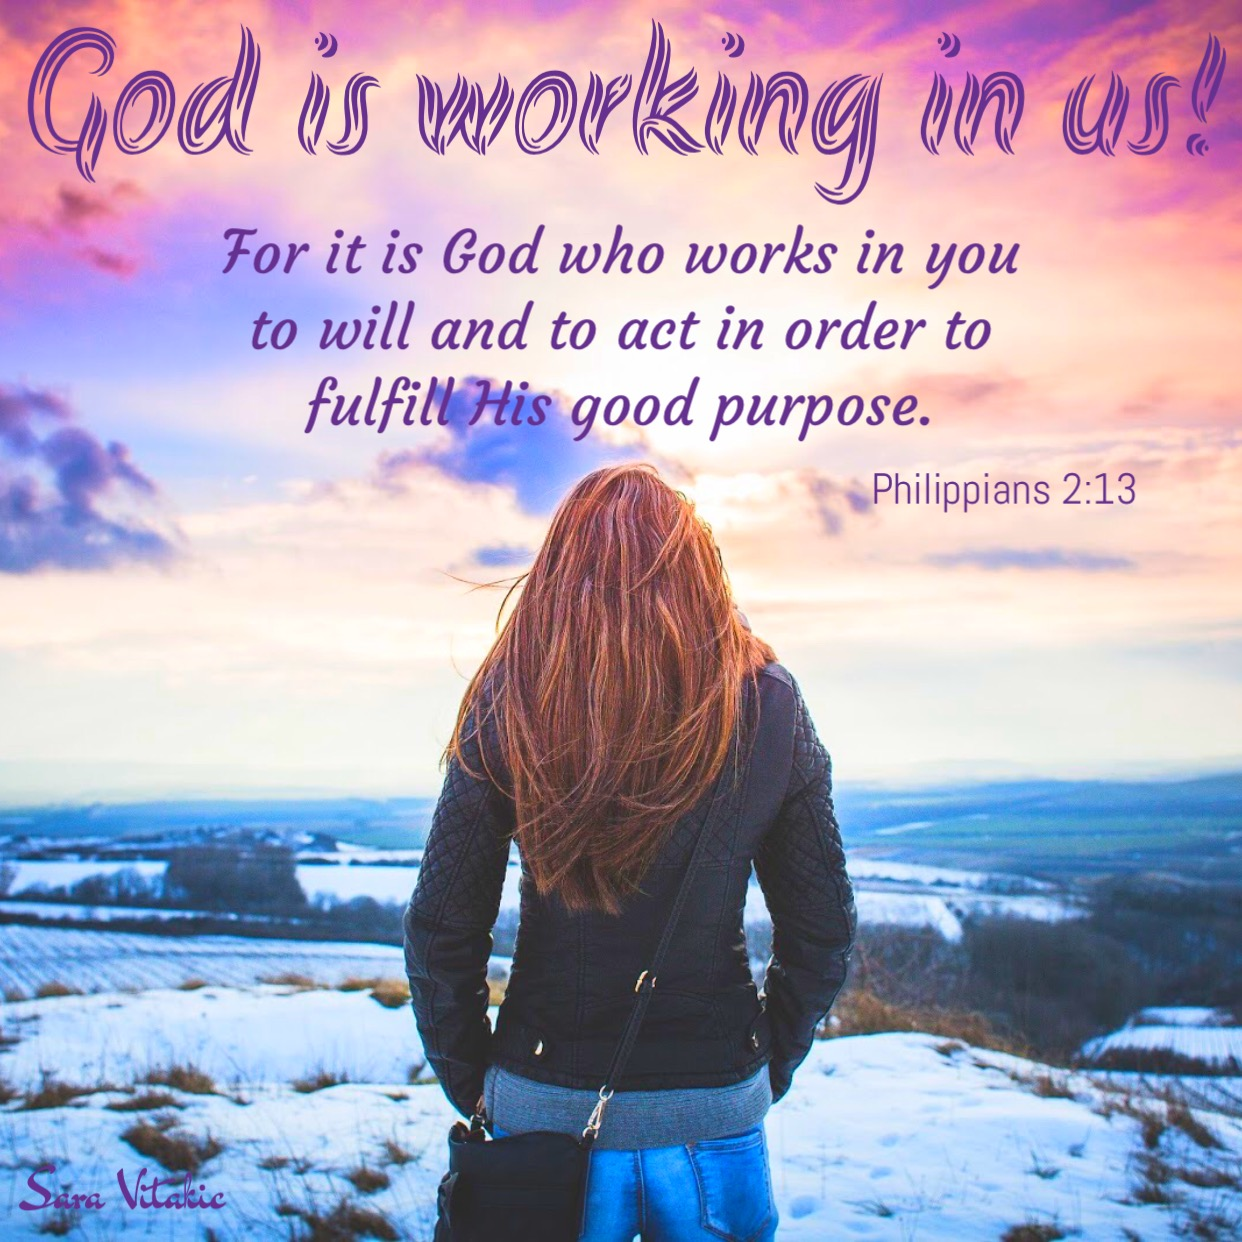 God is working in us